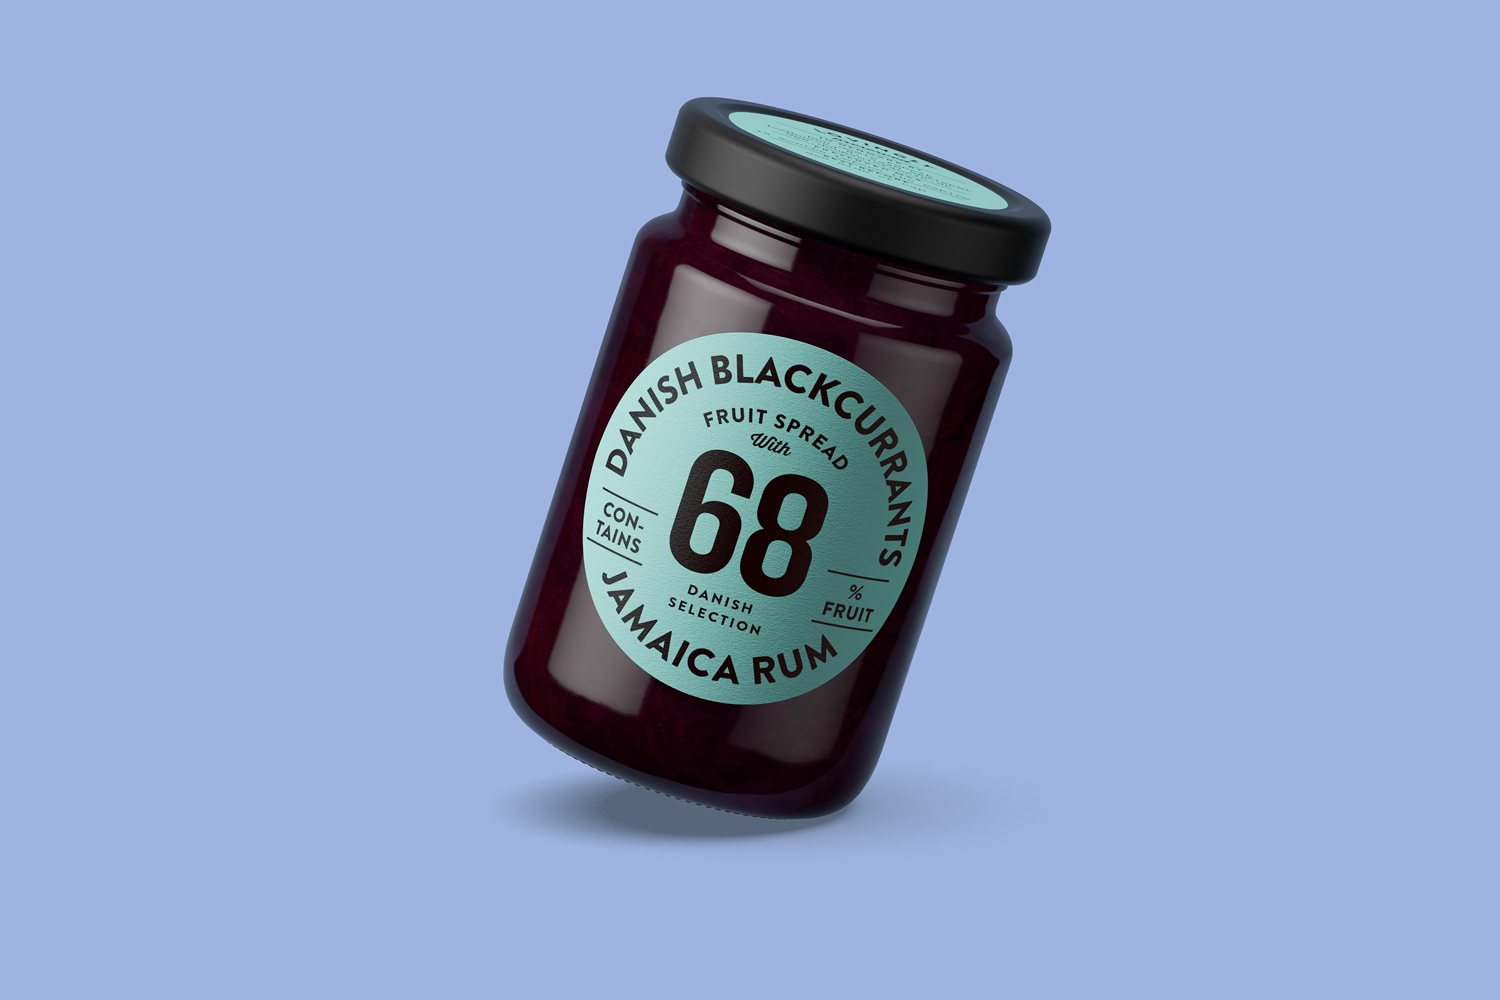 02-Danish-Selection-Alcohlic-Jam-Branding-Packaging-Kontrapunkt-BPO-Orkla-Foods-Danmark.jpg